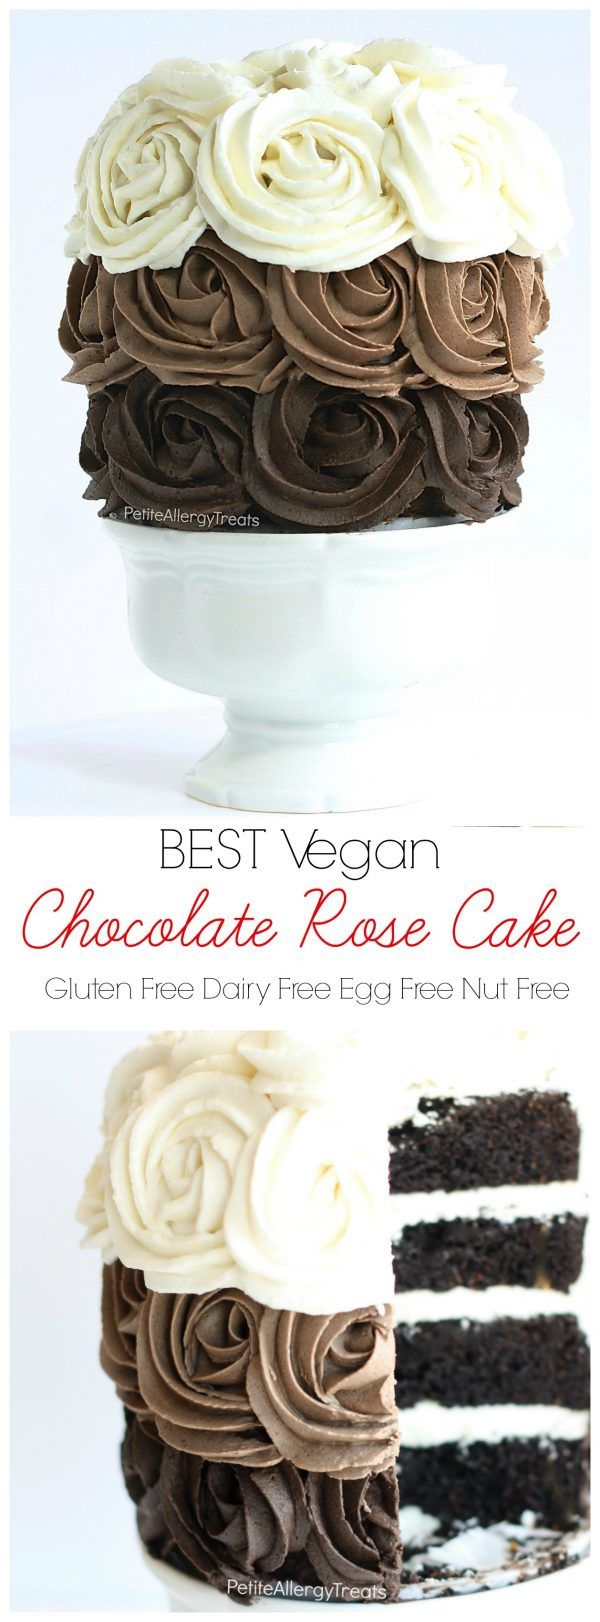 Best Gluten Free Chocolate Cake recipe (gluten free vegan)-Gluten Free Chocolate Cake recipe (vegan)- Gorgeous dairy free roses adorn this decadent chocolate cake. Food allergy friendly- egg free soy free nut free #EatFreely #ad